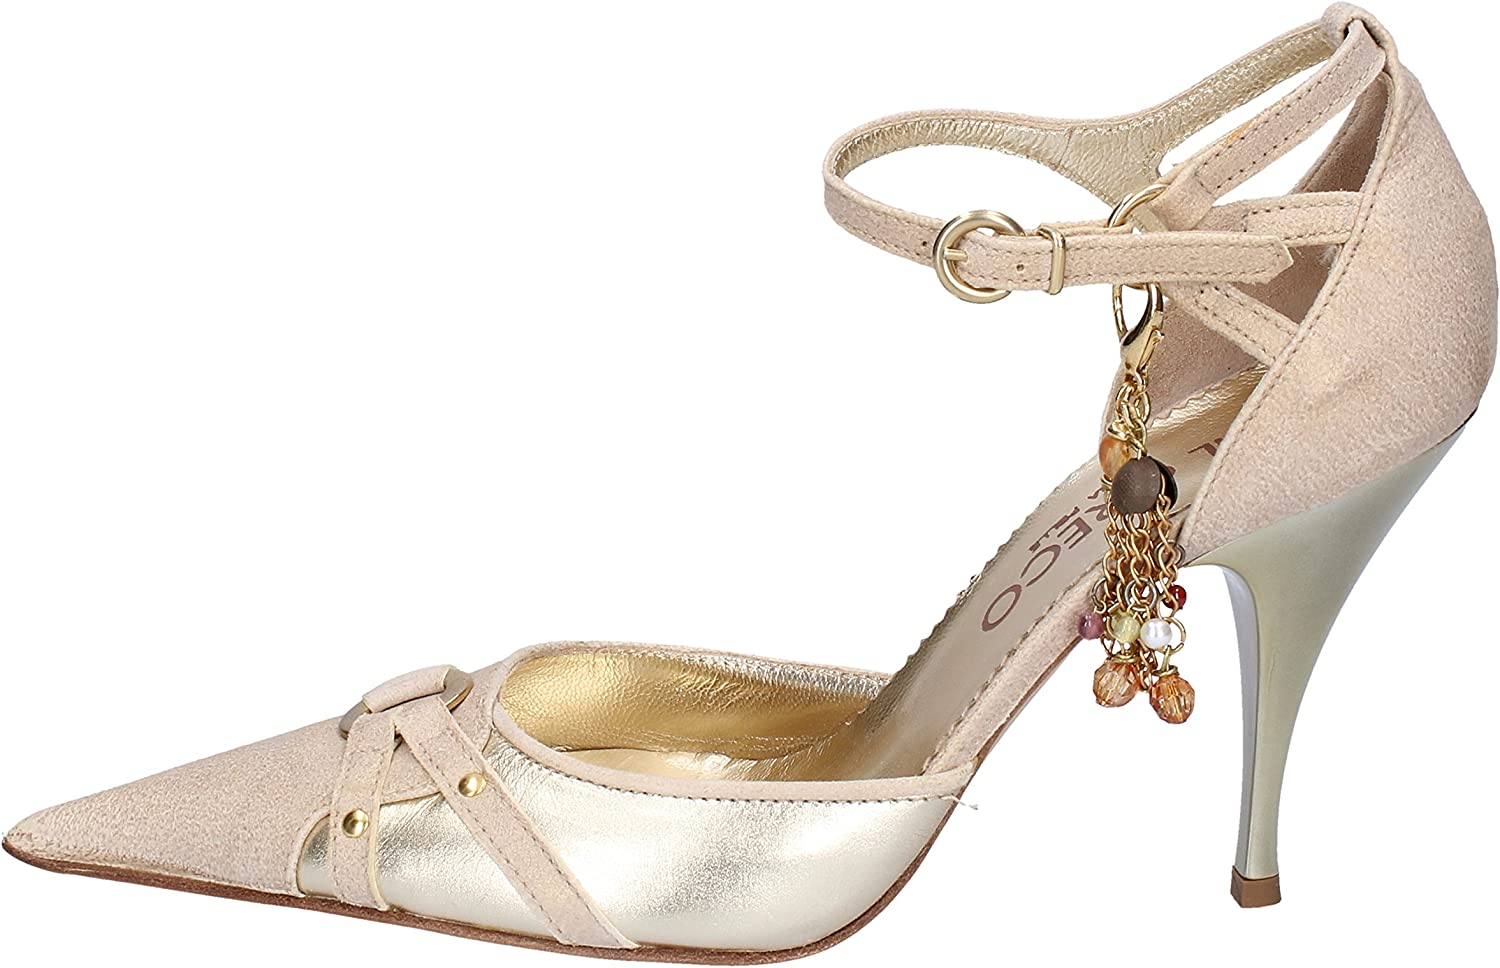 IL GRECO Pumps-shoes Womens Leather Silver 6 US